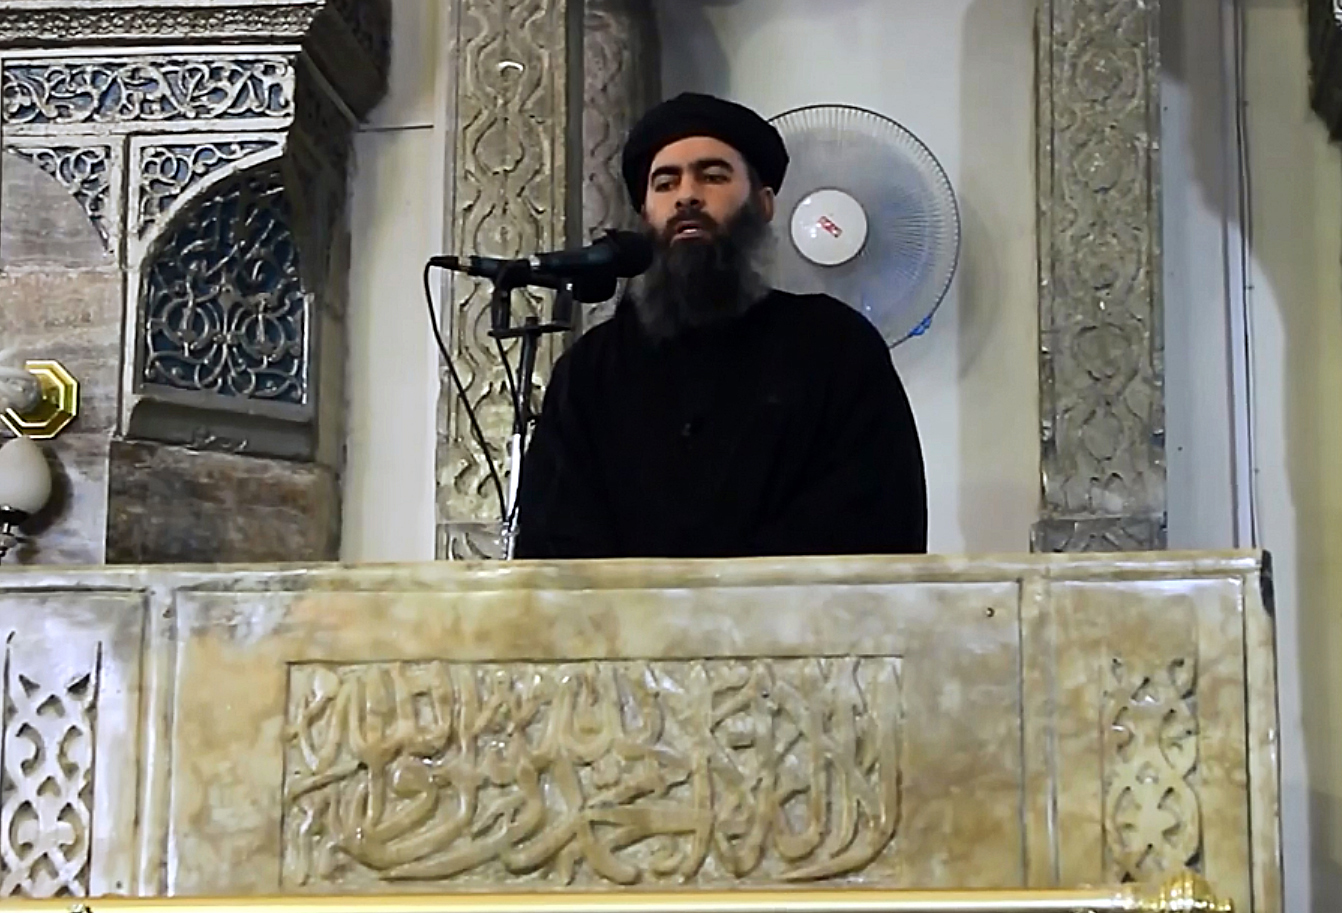 An image grab taken from a video released on July 5, 2014 by Al-Furqan Media shows alleged ISIS leader Abu Bakr al-Baghdadi at a mosque in Mosul.